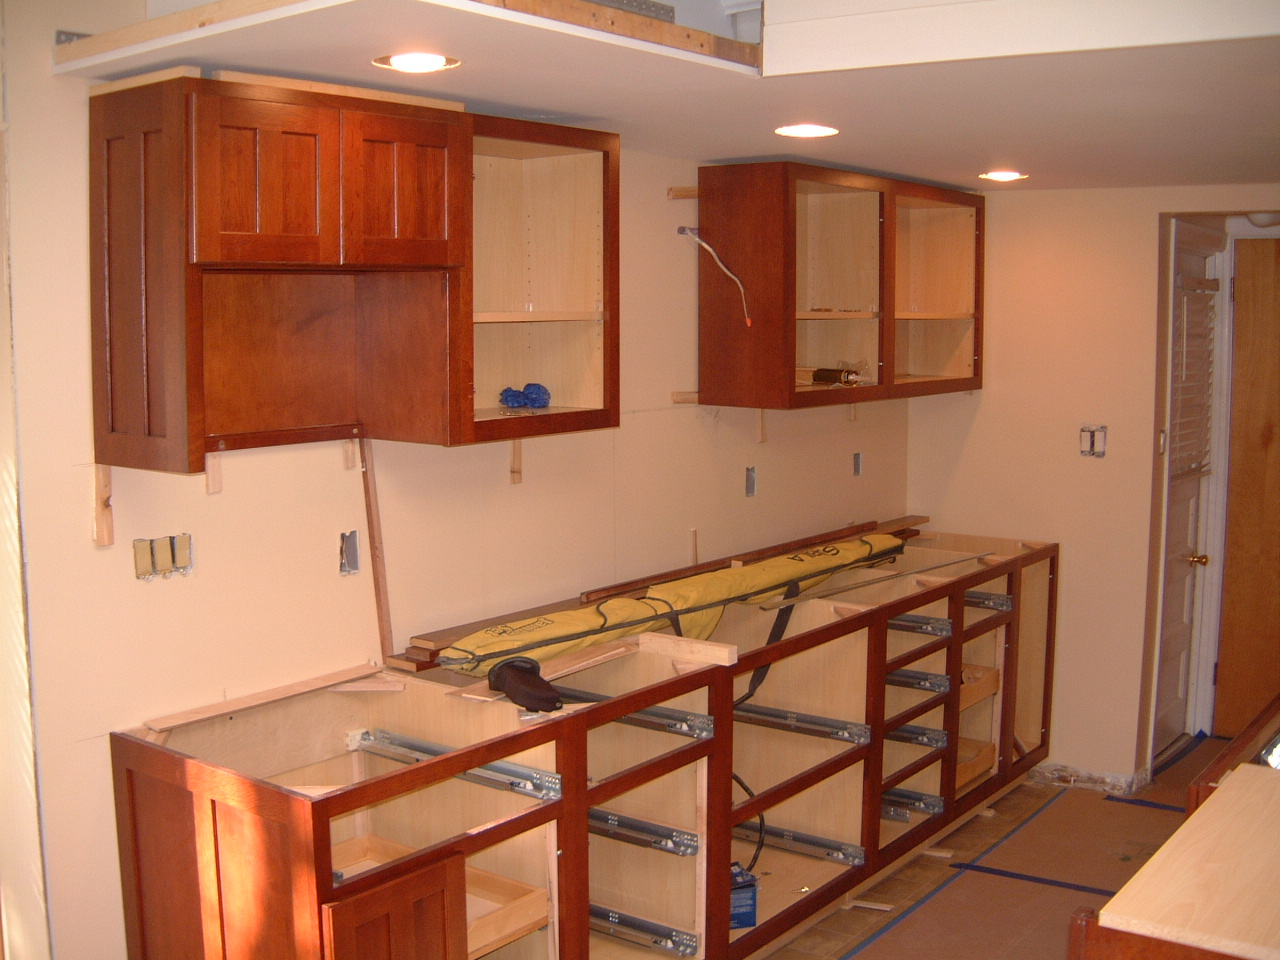 The Base And Upper Cabinets Have Been Installed On The Sink Wall You